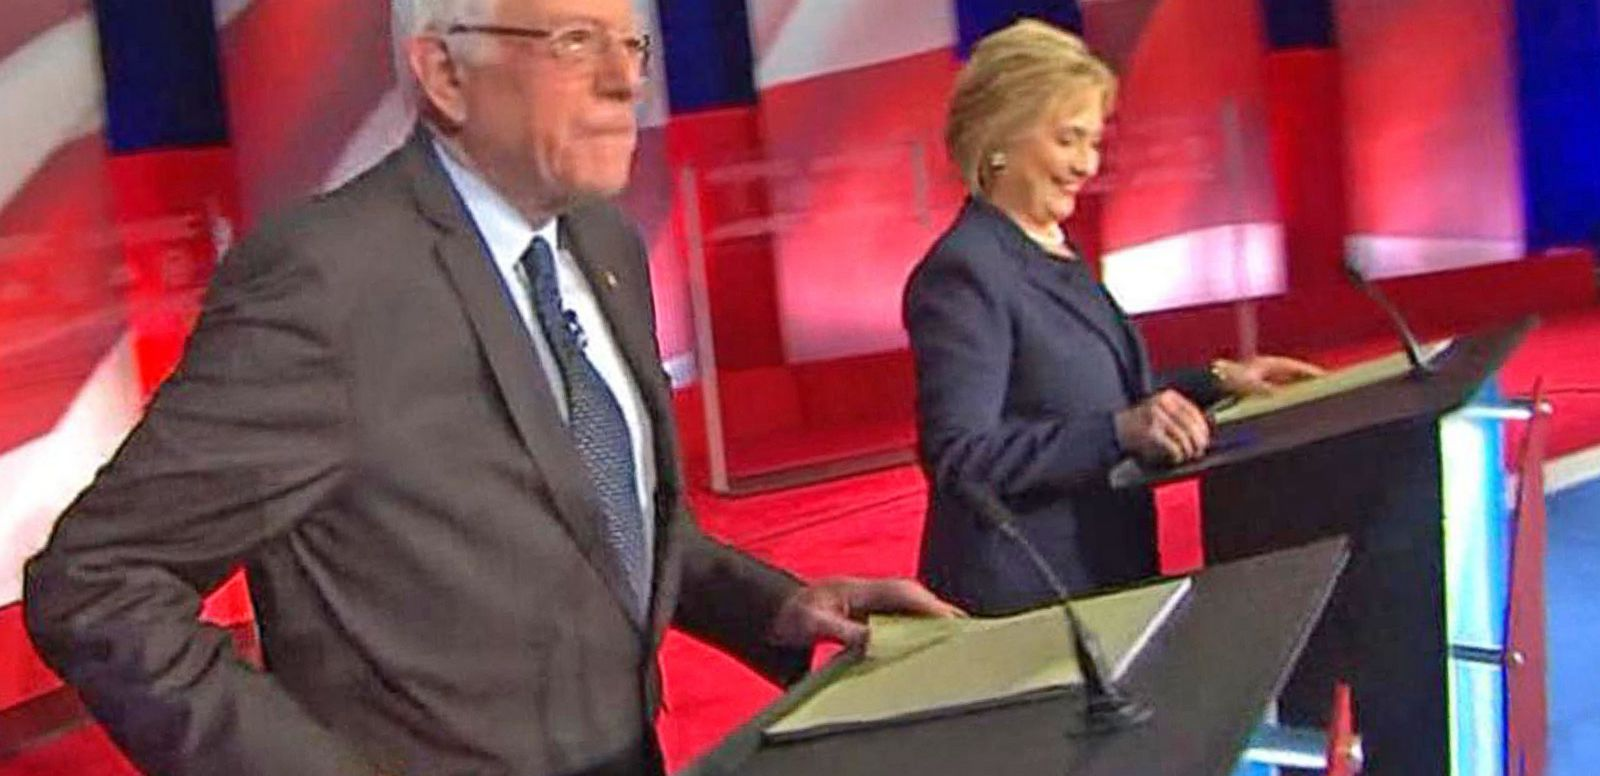 VIDEO: Hillary Clinton, Bernie Sanders Ramp up Campaigns Ahead of Primary